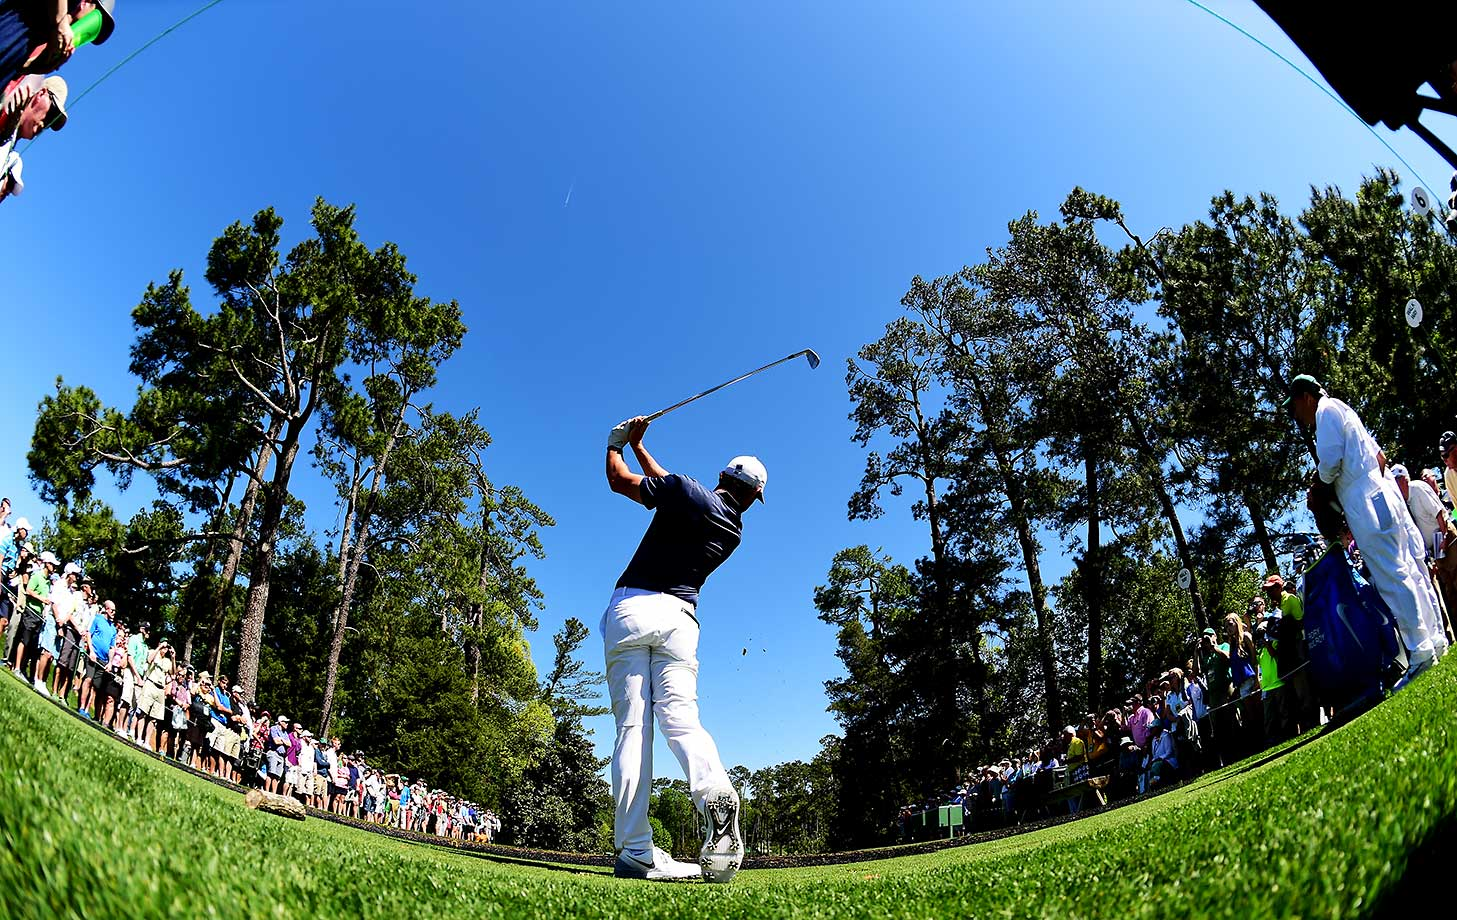 Rory McIlroy plays his shot from the sixth tee during a practice round prior to the start of the Masters.